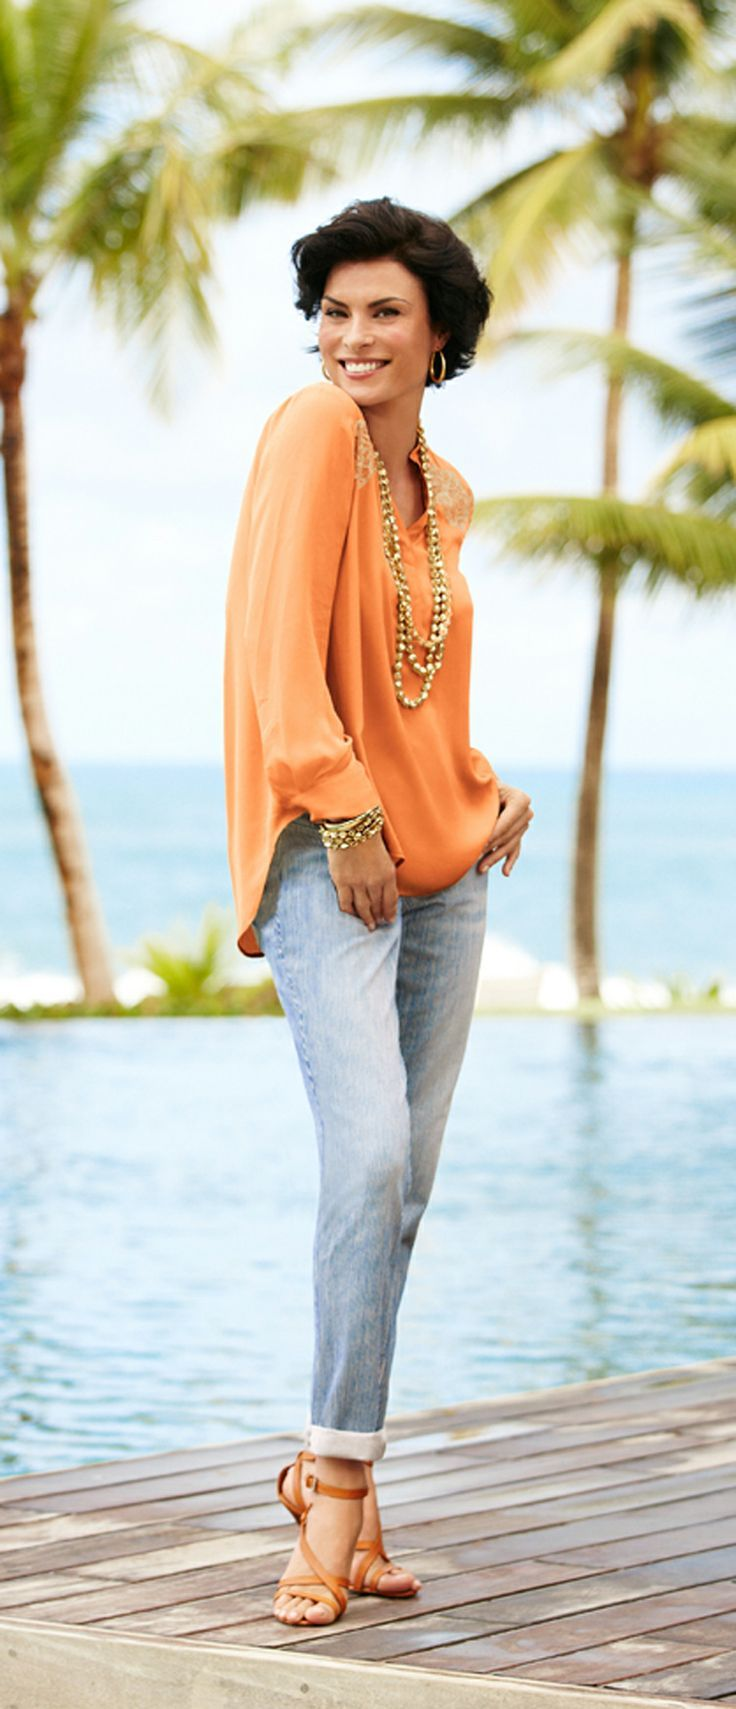 The Female Tendency And The 40 S Look: Boyfriend Jeans And Feminine Top. So Pretty! #chicos